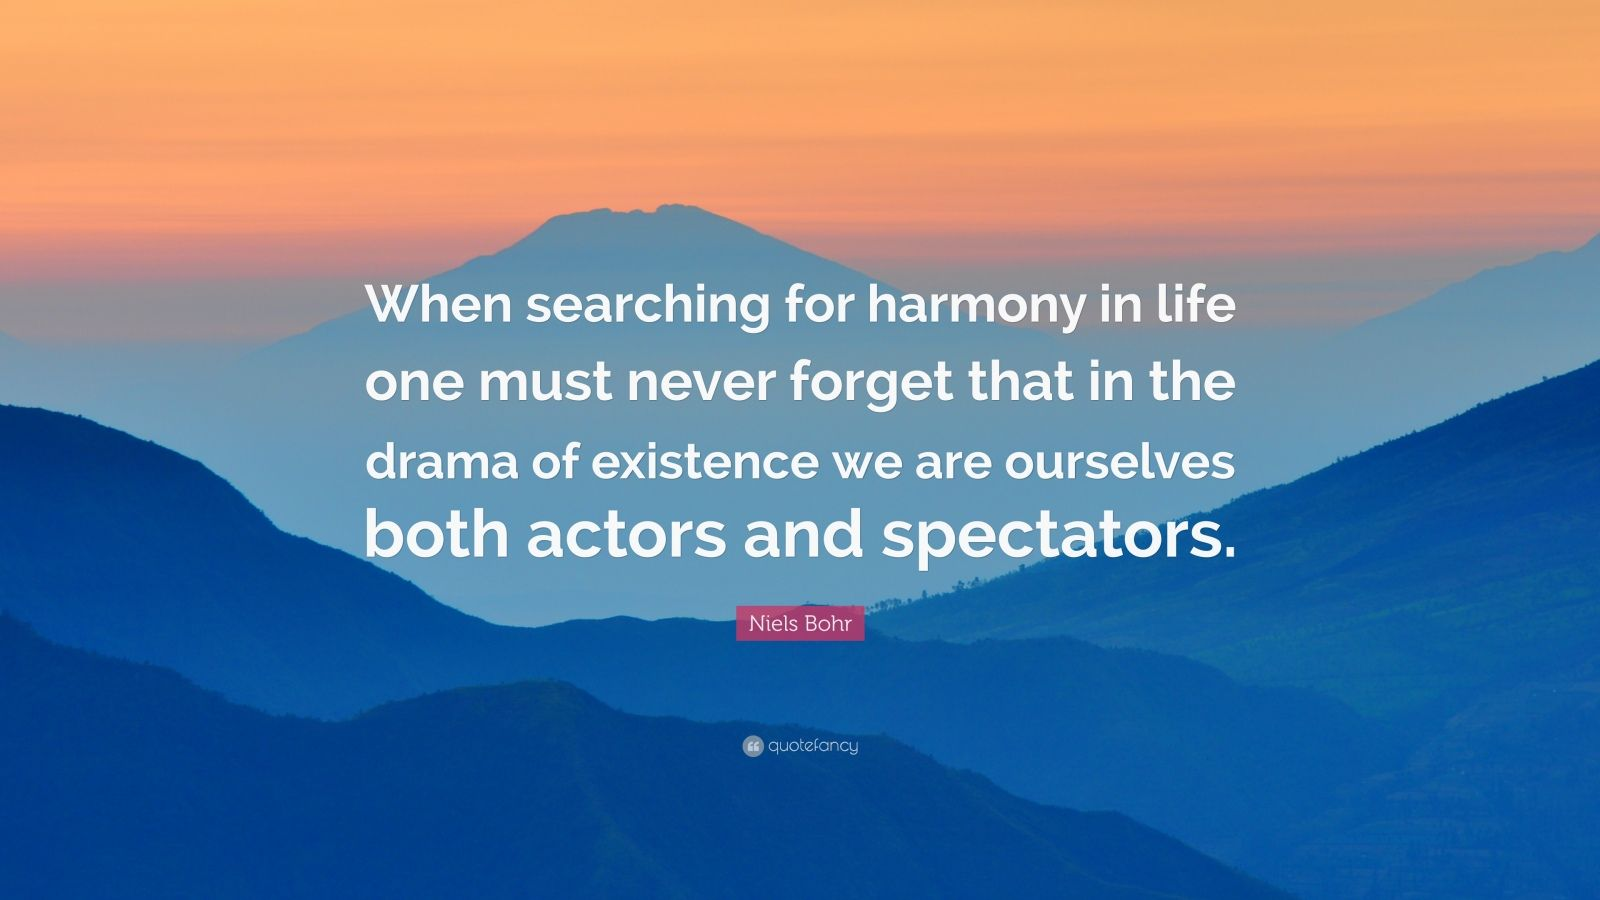 """Niels Bohr Quote: """"When searching for harmony in life one must never forget that in the drama of existence we are ourselves both actors and spectators."""""""